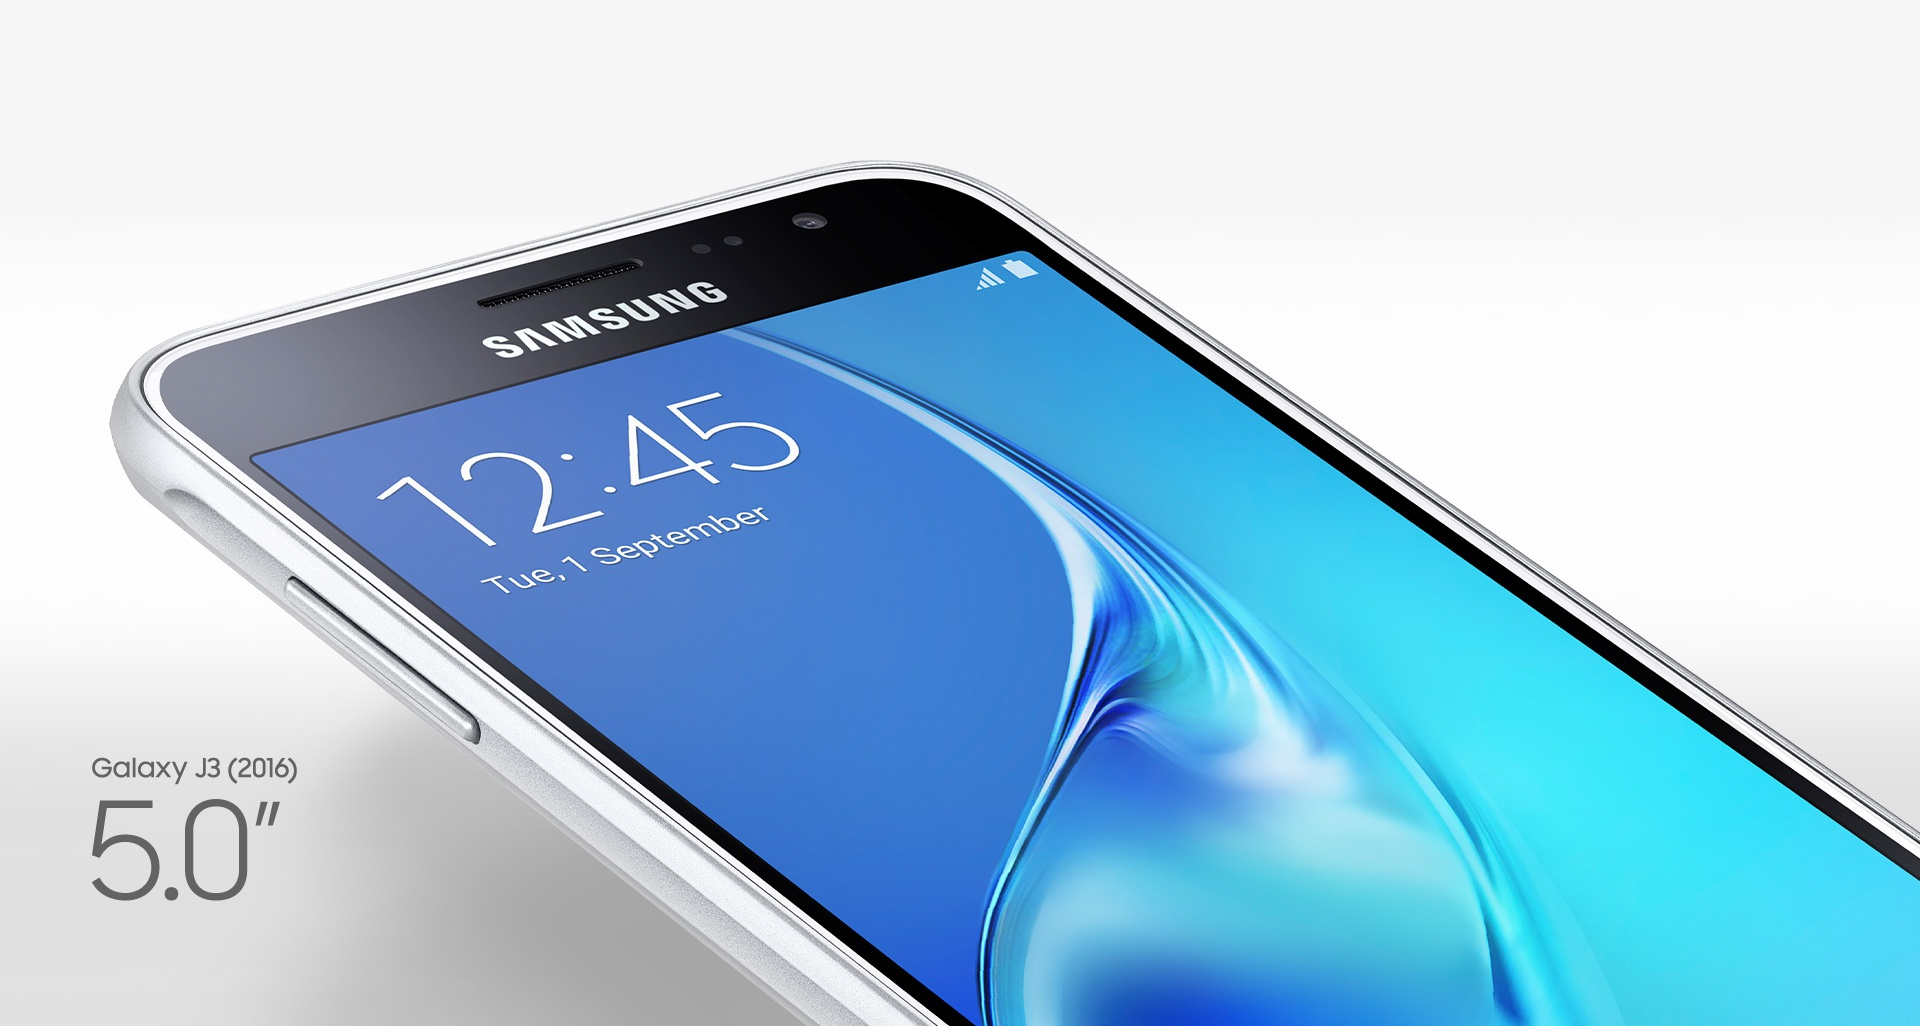 samsung preparing to release the galaxy j3 2016 in several european